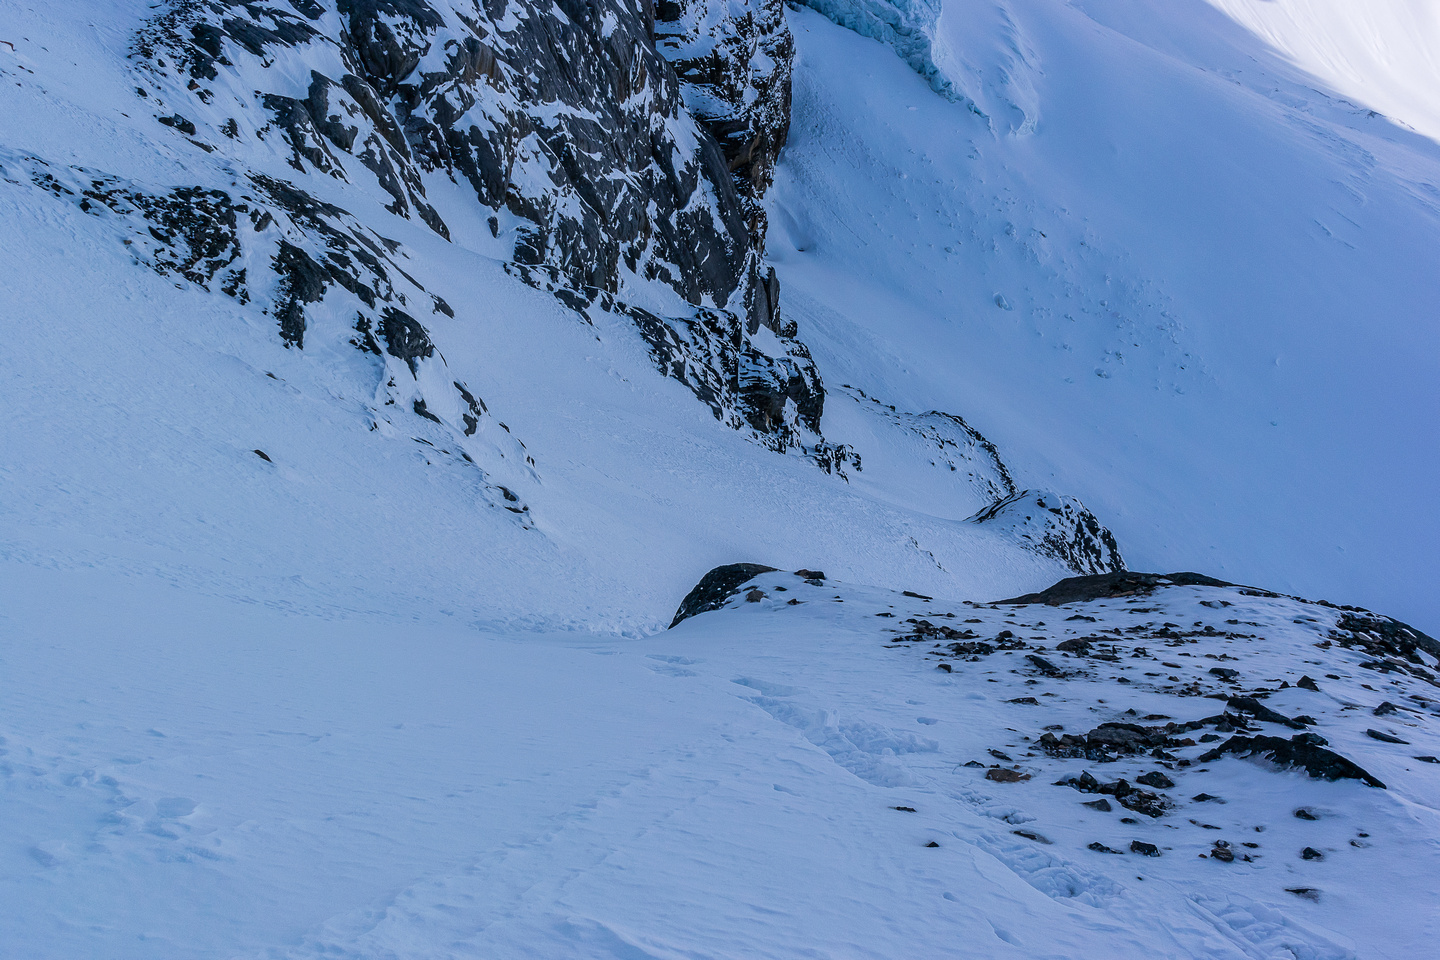 his is where a slide would take you over the headwall section.